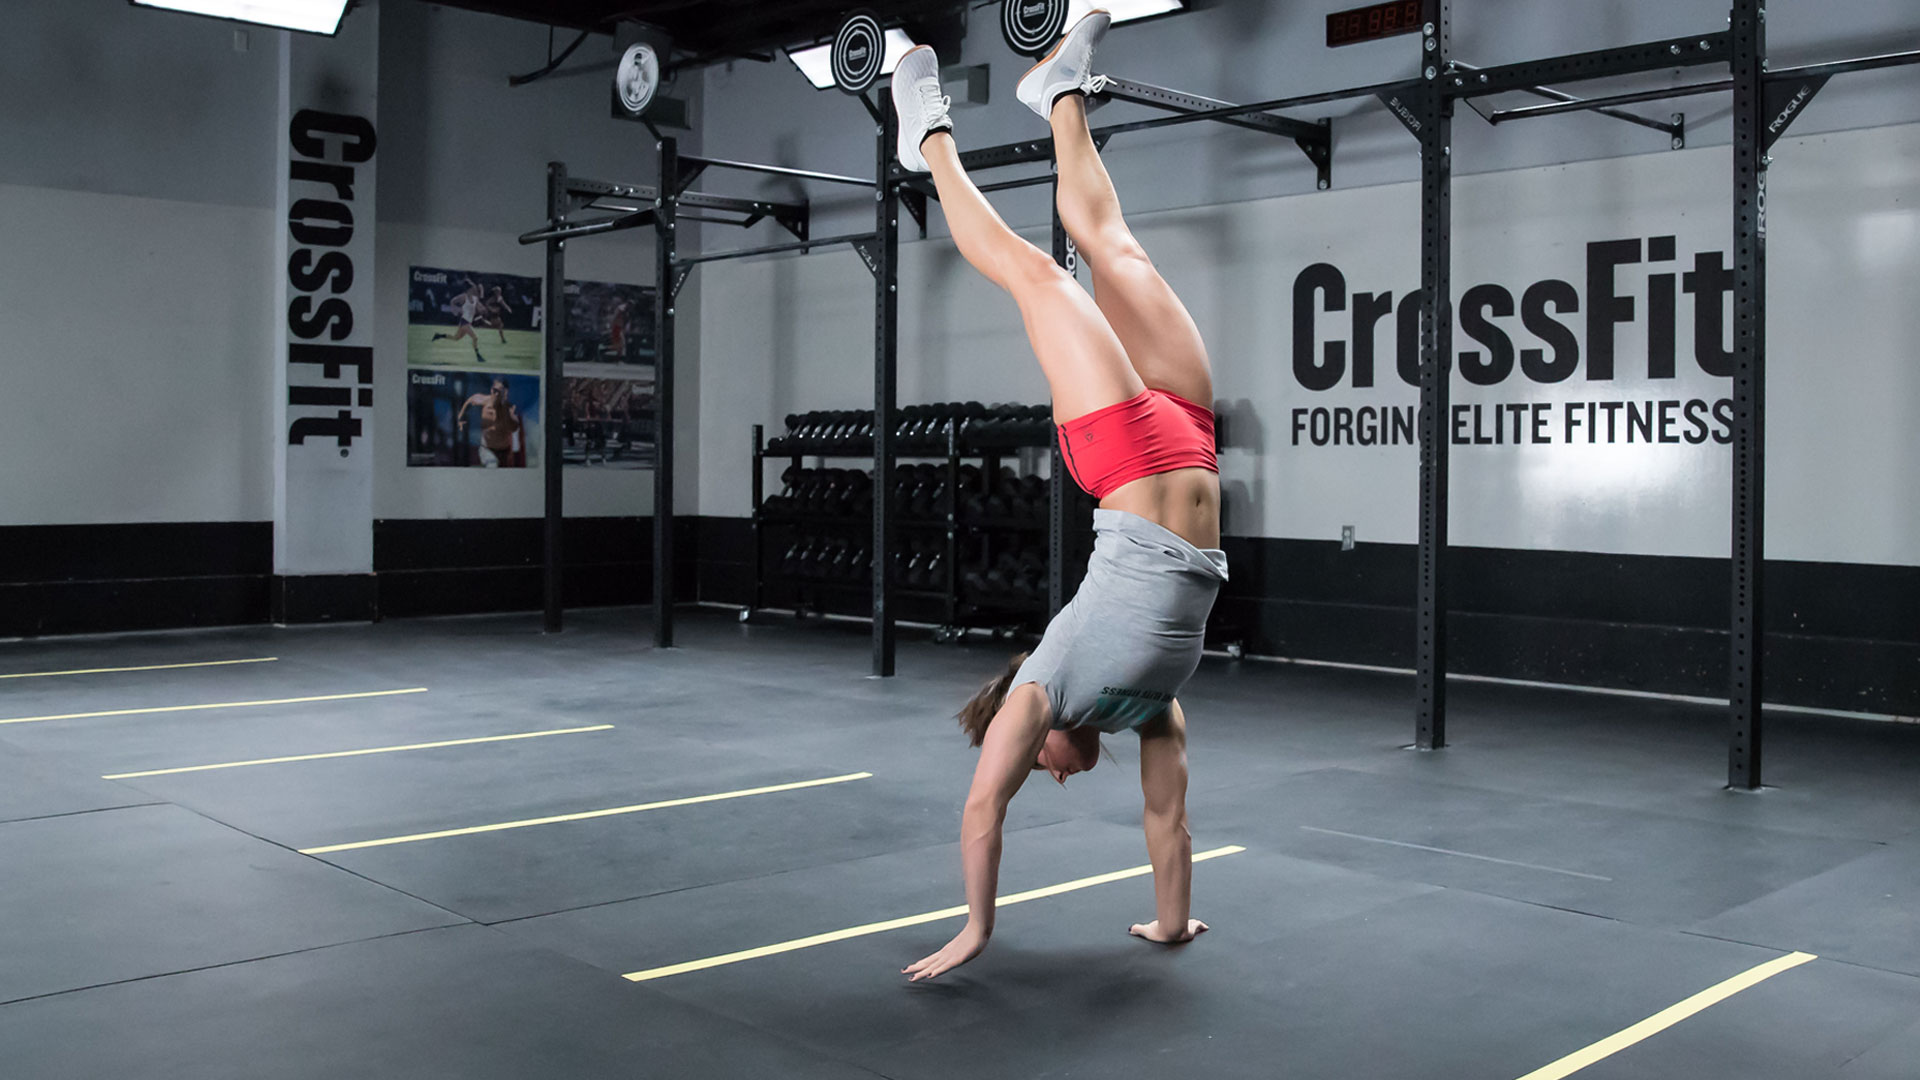 Crossfit: forging elite fitness: friday 180316